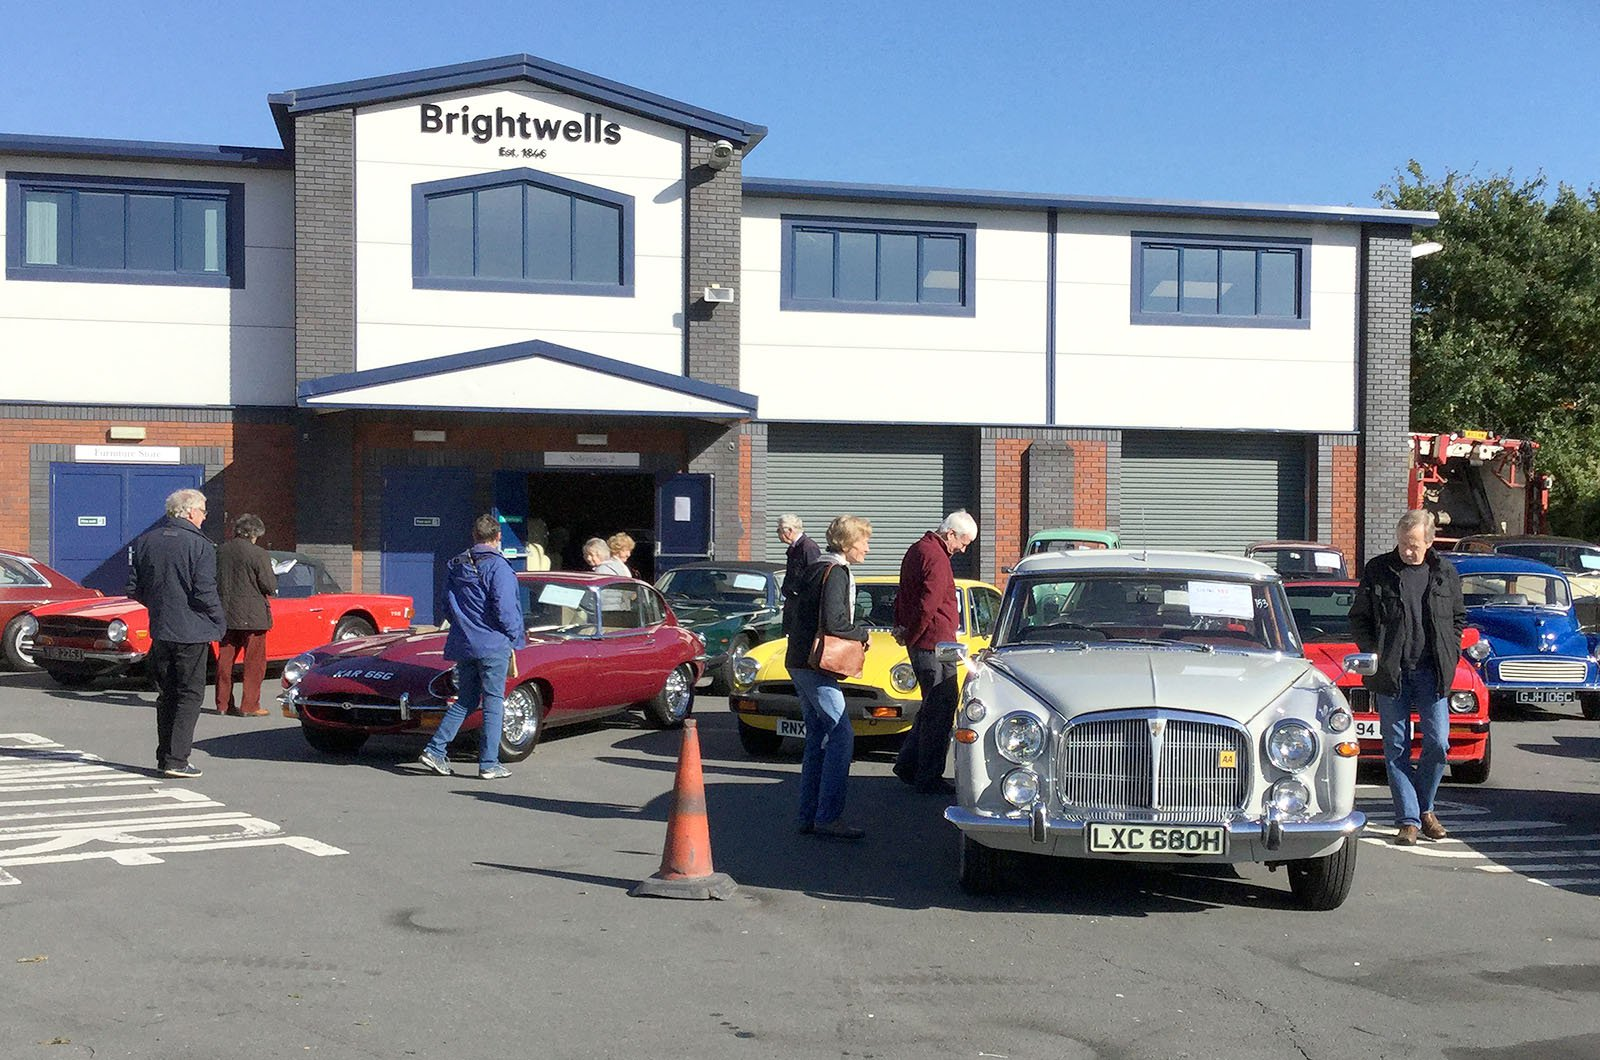 Potential bidders inspecting classic cars before auction commences